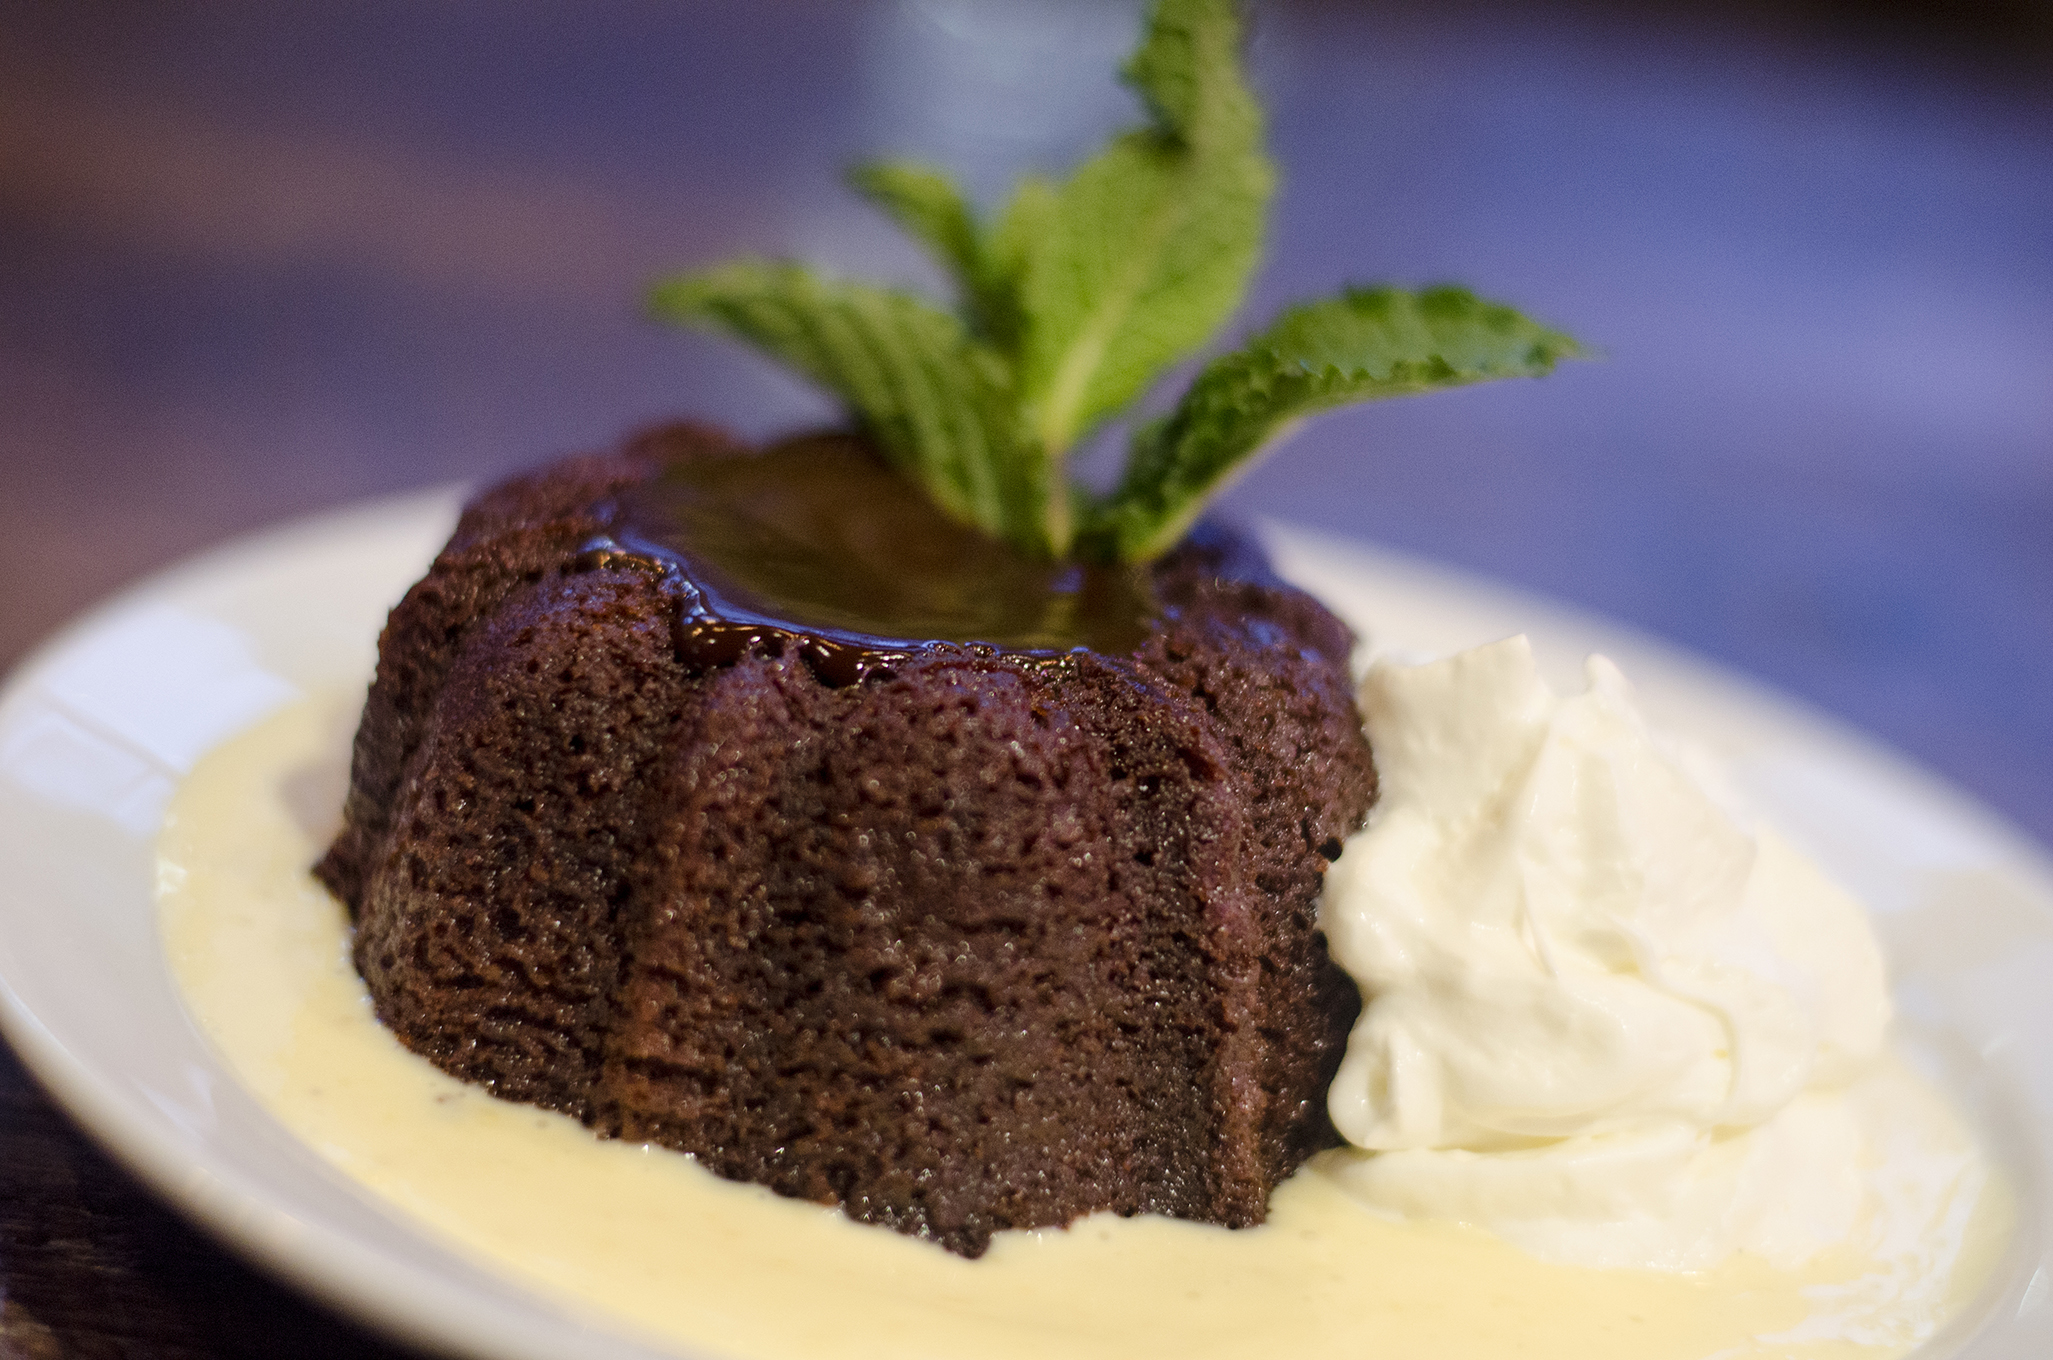 Chocolate lava cake from The Grove Brew House in Kingsville, Ontario.